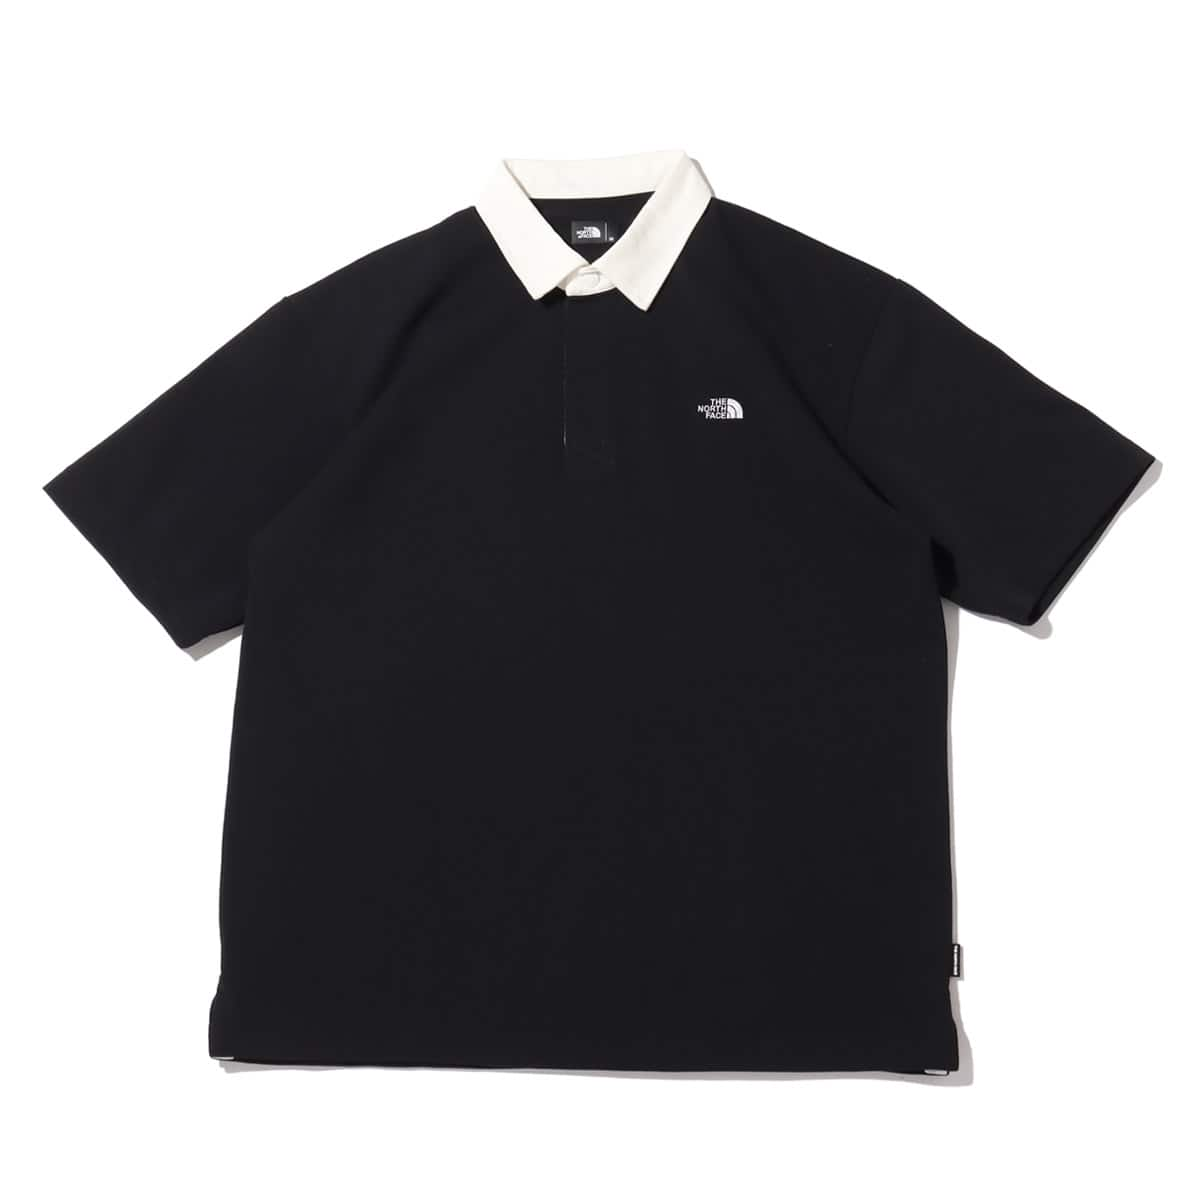 THE NORTH FACE S/S RUGBY POLO BLACK 21SS-I_photo_large